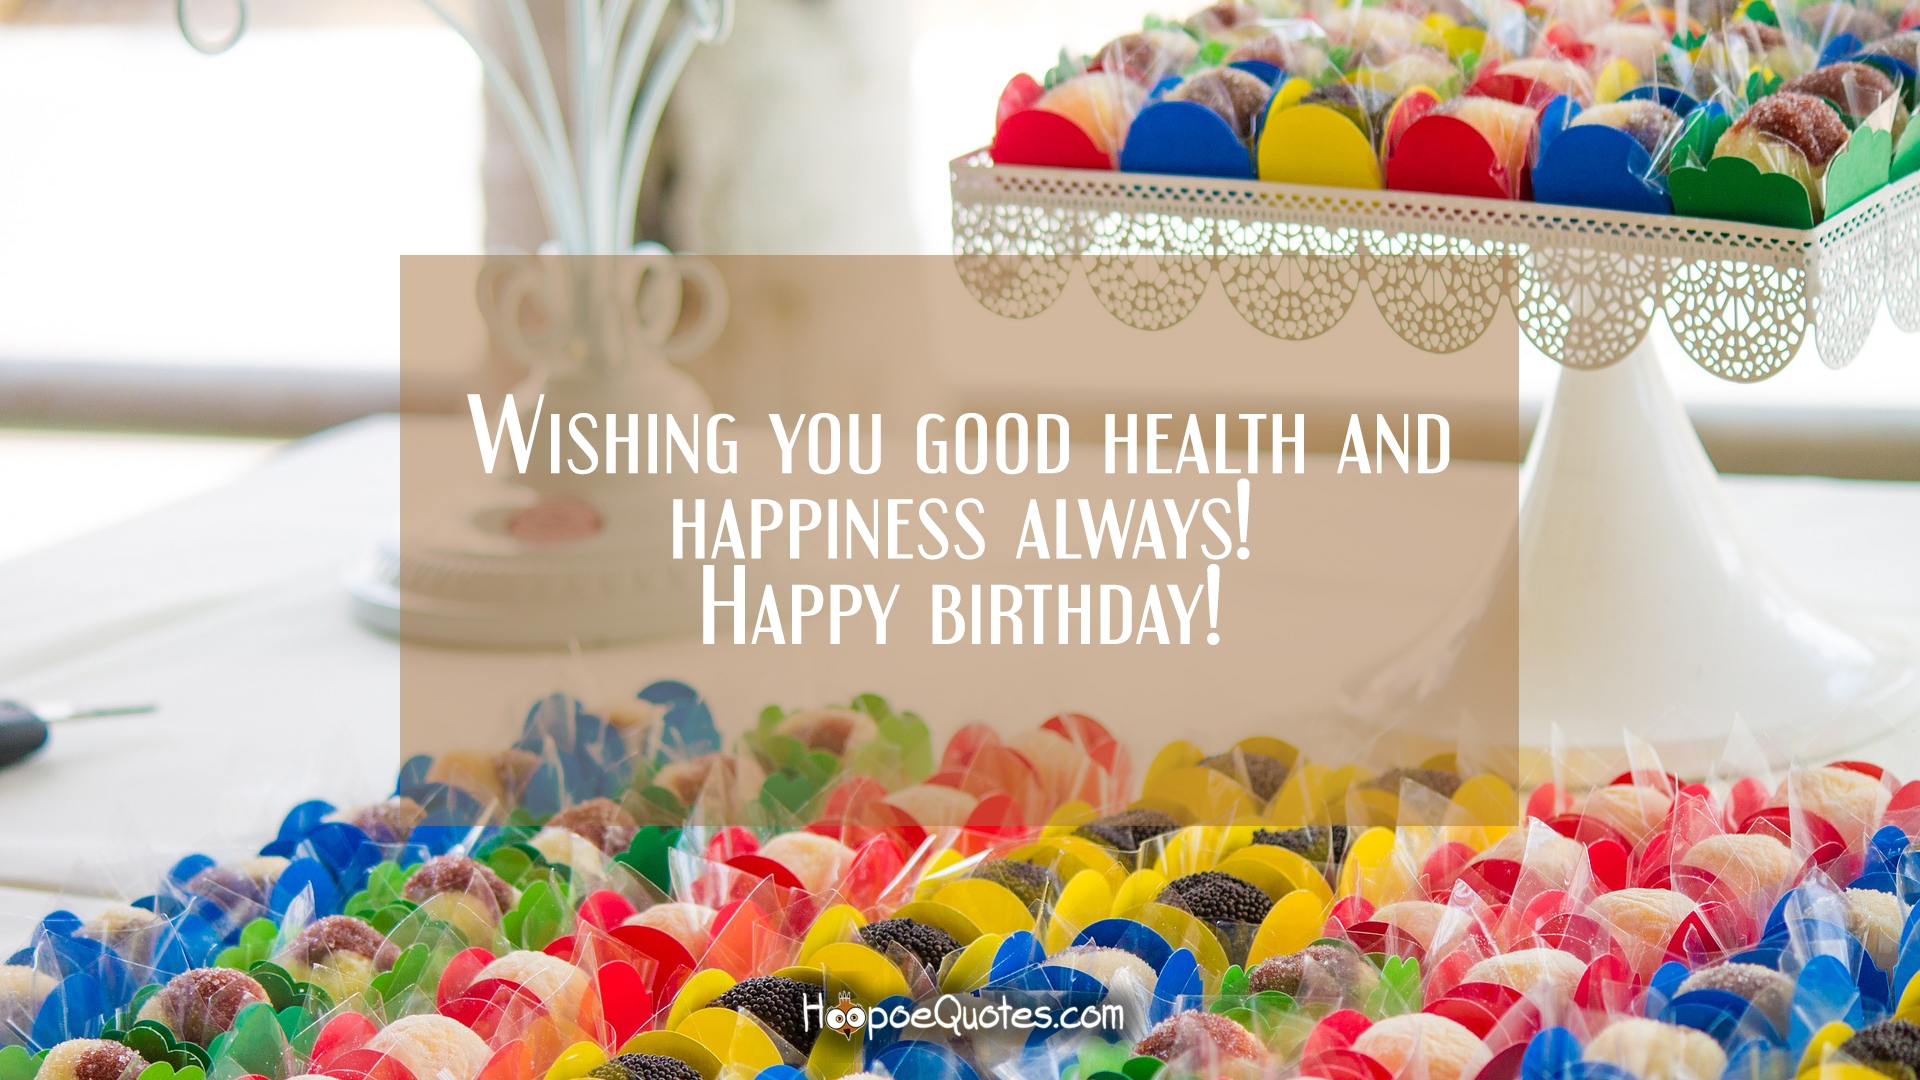 Birthday Quotes For Kids Happy Birthday Kids Birthday Wishes For Kids With Images